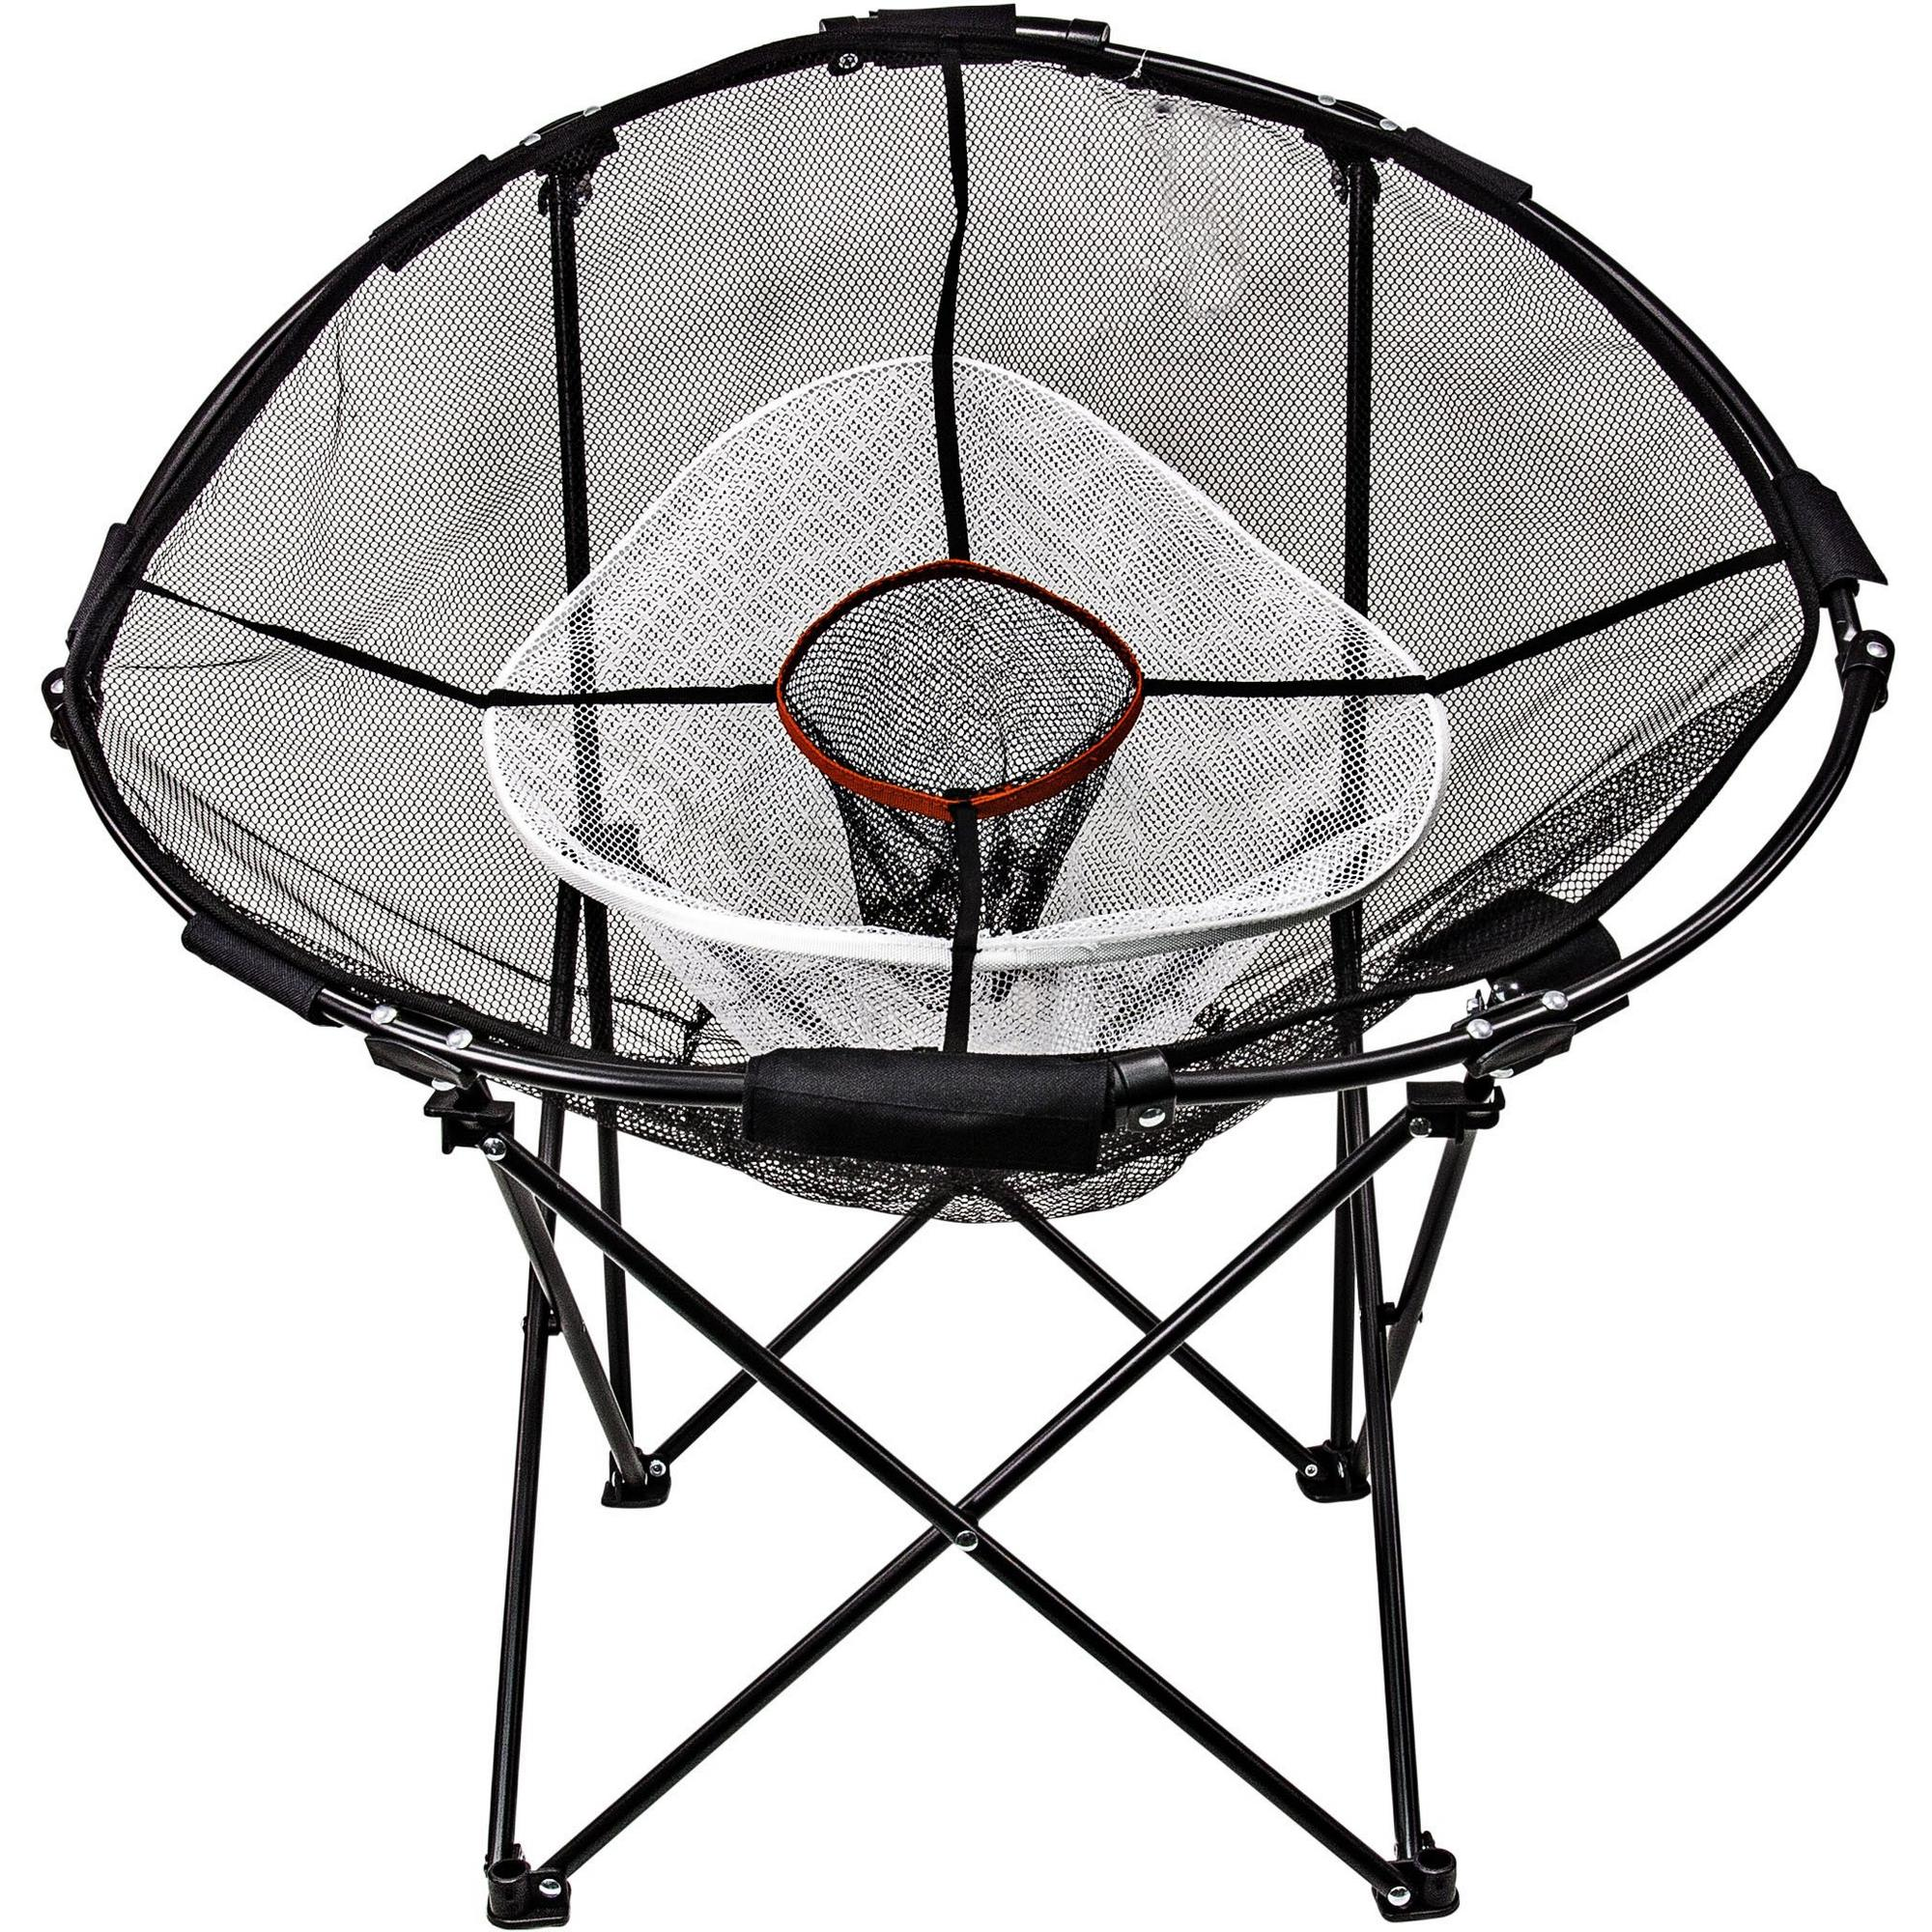 23IN Folding Chipping Basket